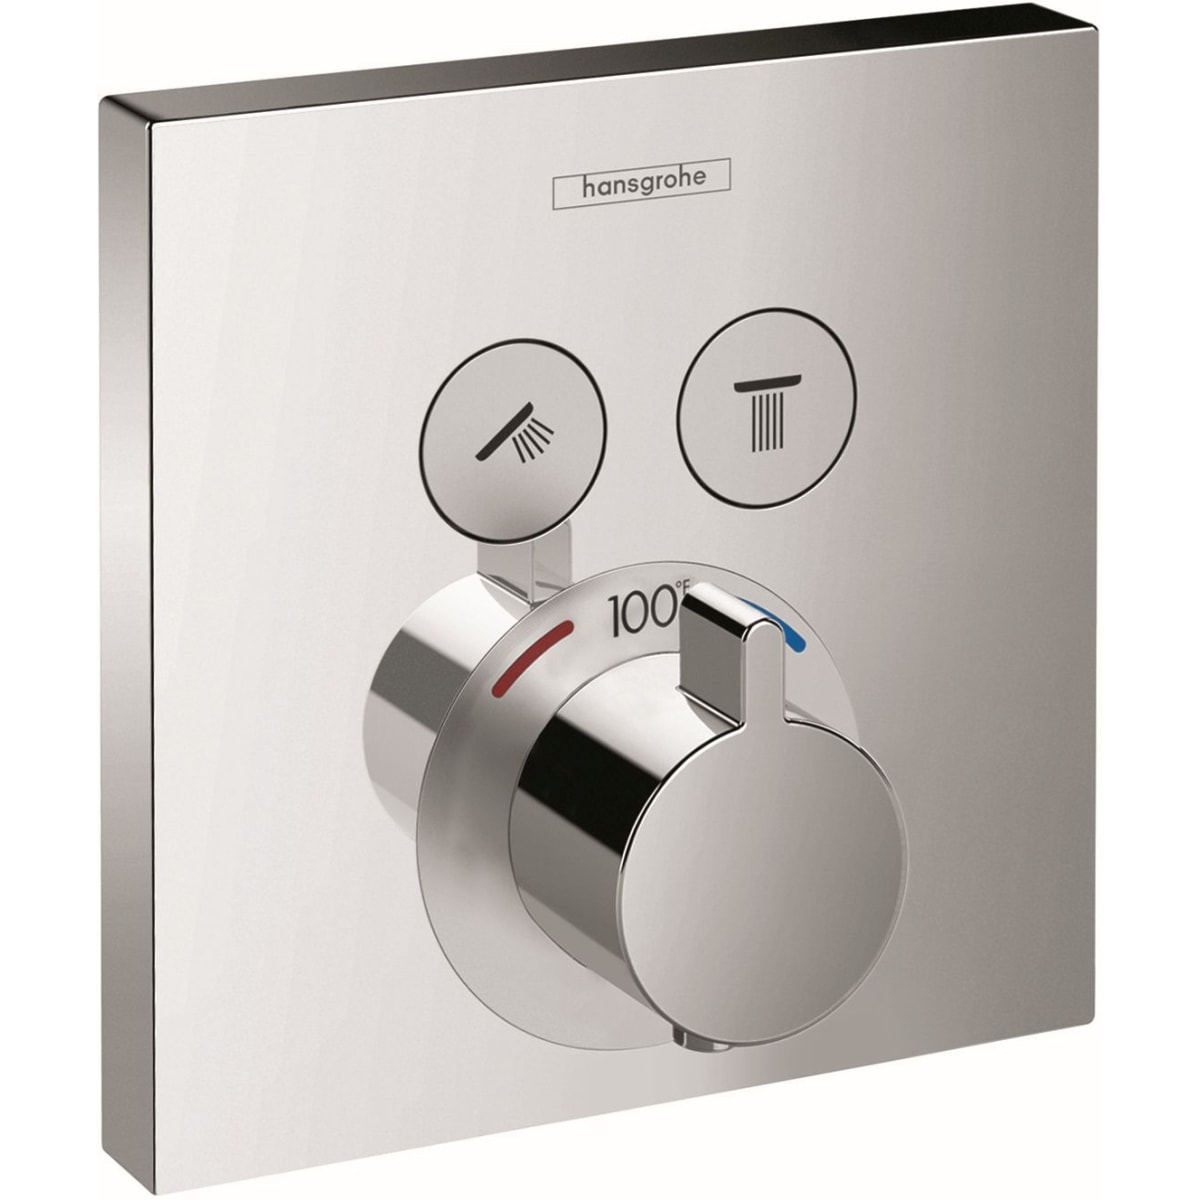 Hansgrohe Shower Raindance Collection - S Thermostatic Trim with Volume Control and Diverter (04231)